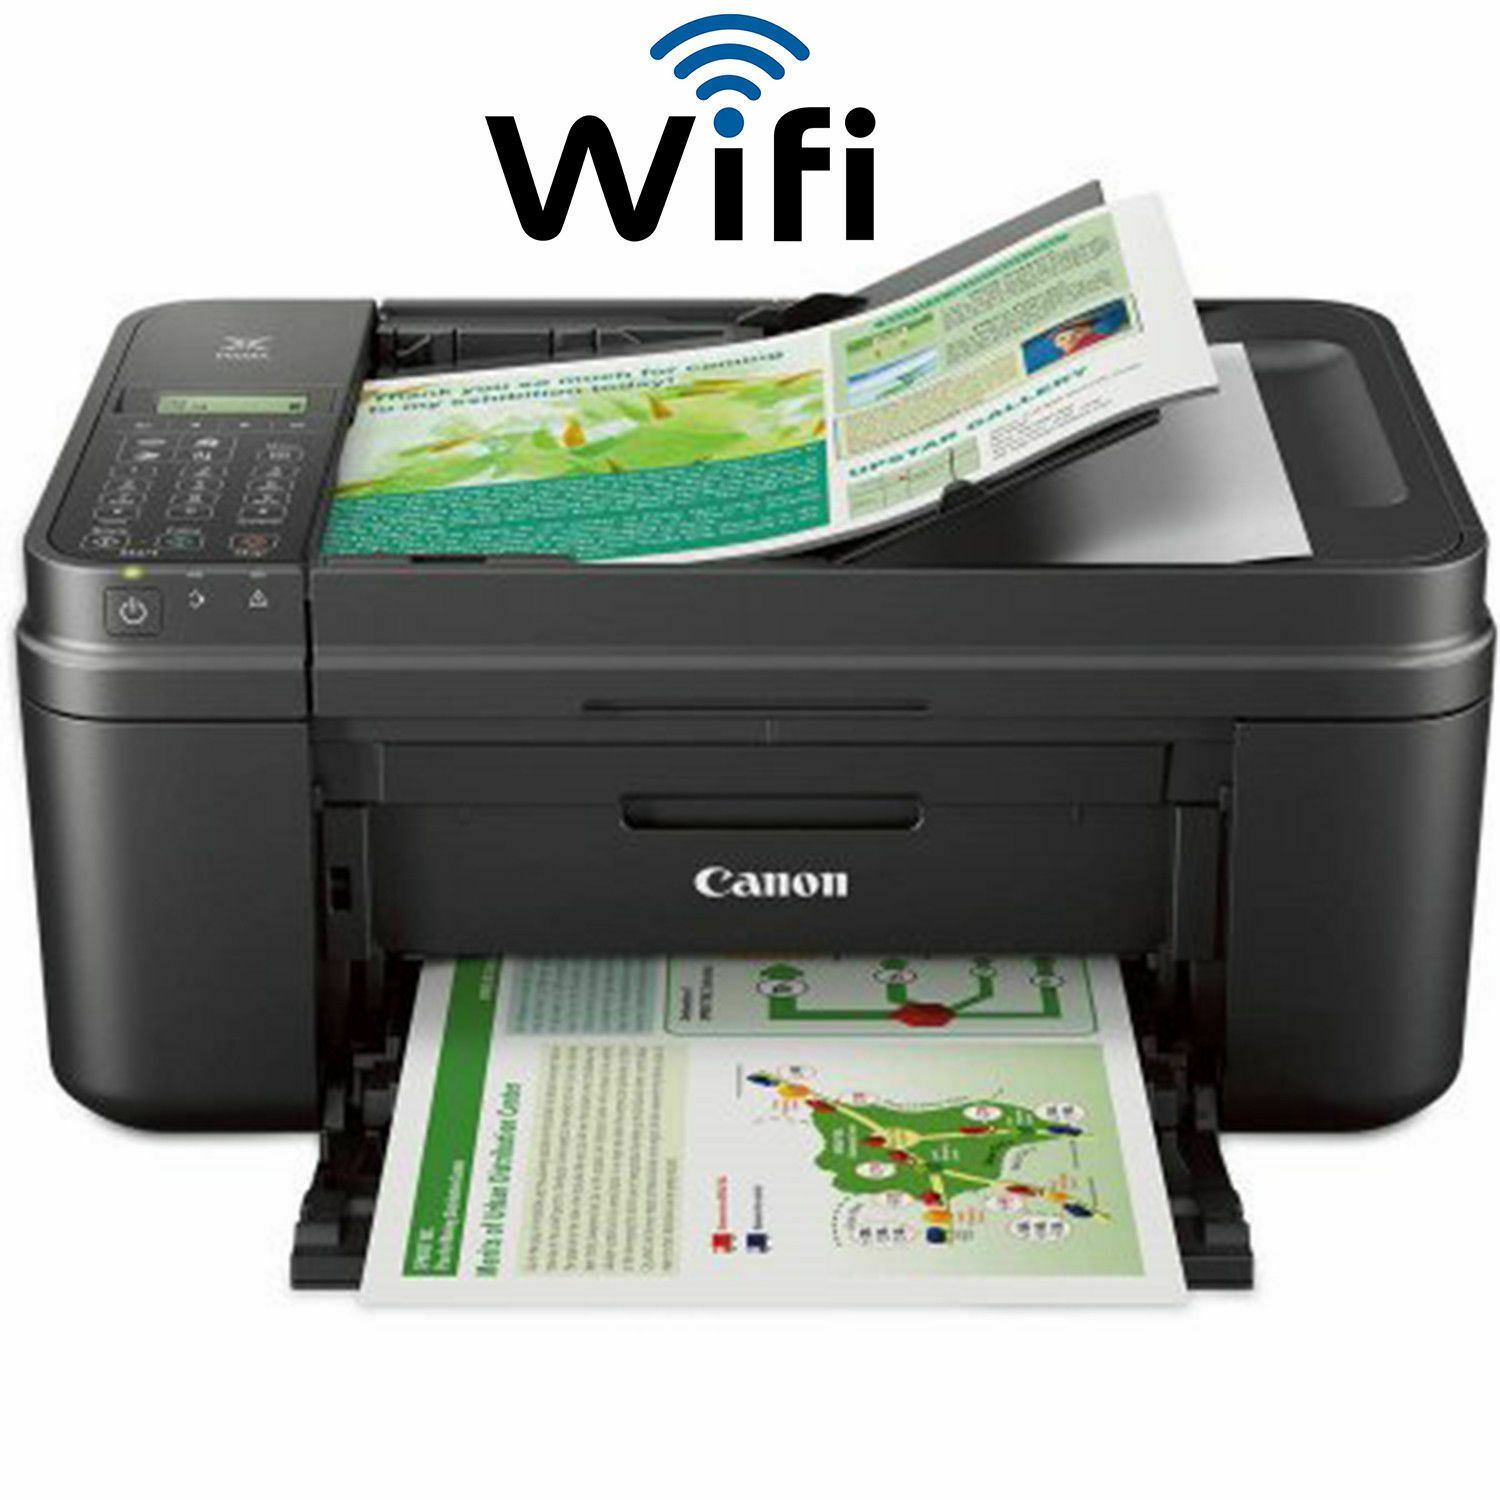 Wireless Printer Scanner Copier Fax All In One Canon Pixma